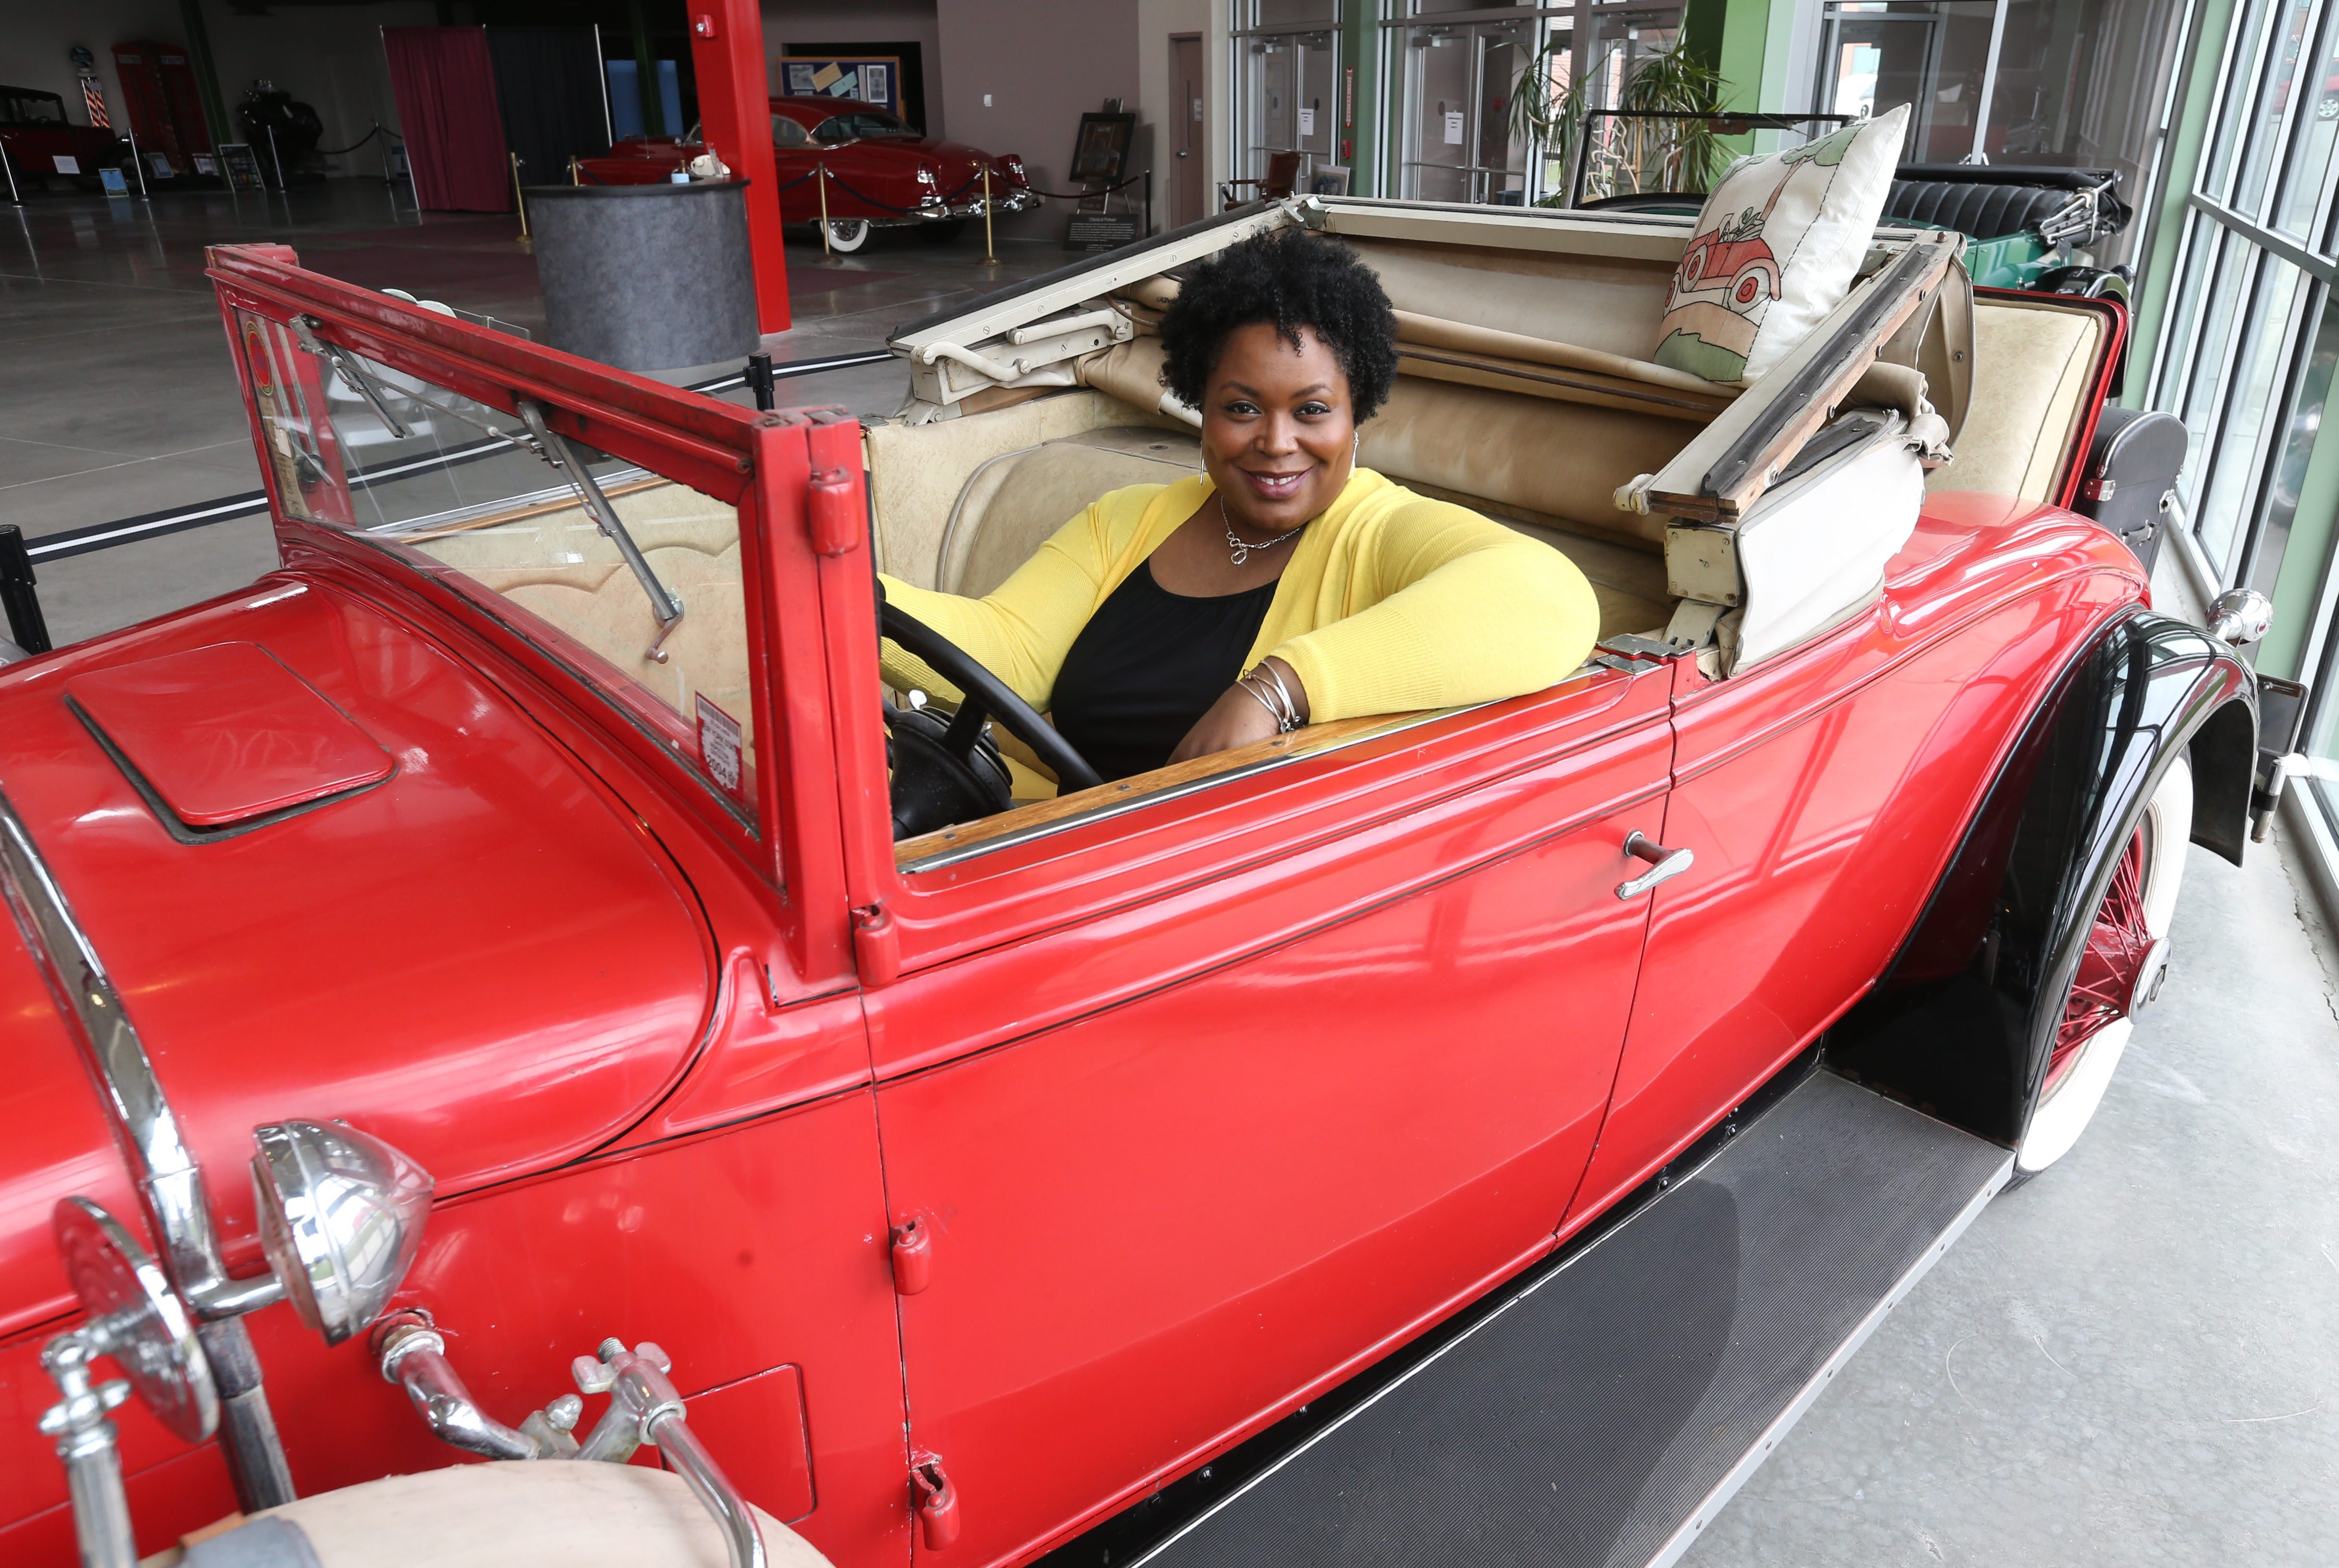 """""""I live in the front seat. I'm conscious about the decisions I make."""" – Kelly Marie Showard, founder of the Front Seat Chronicles, a social media campaign to share experiences and instill hope, in the front seat of a 1929 Stutz convertible at the Buffalo Transportation Pierce-Arrow Museum."""